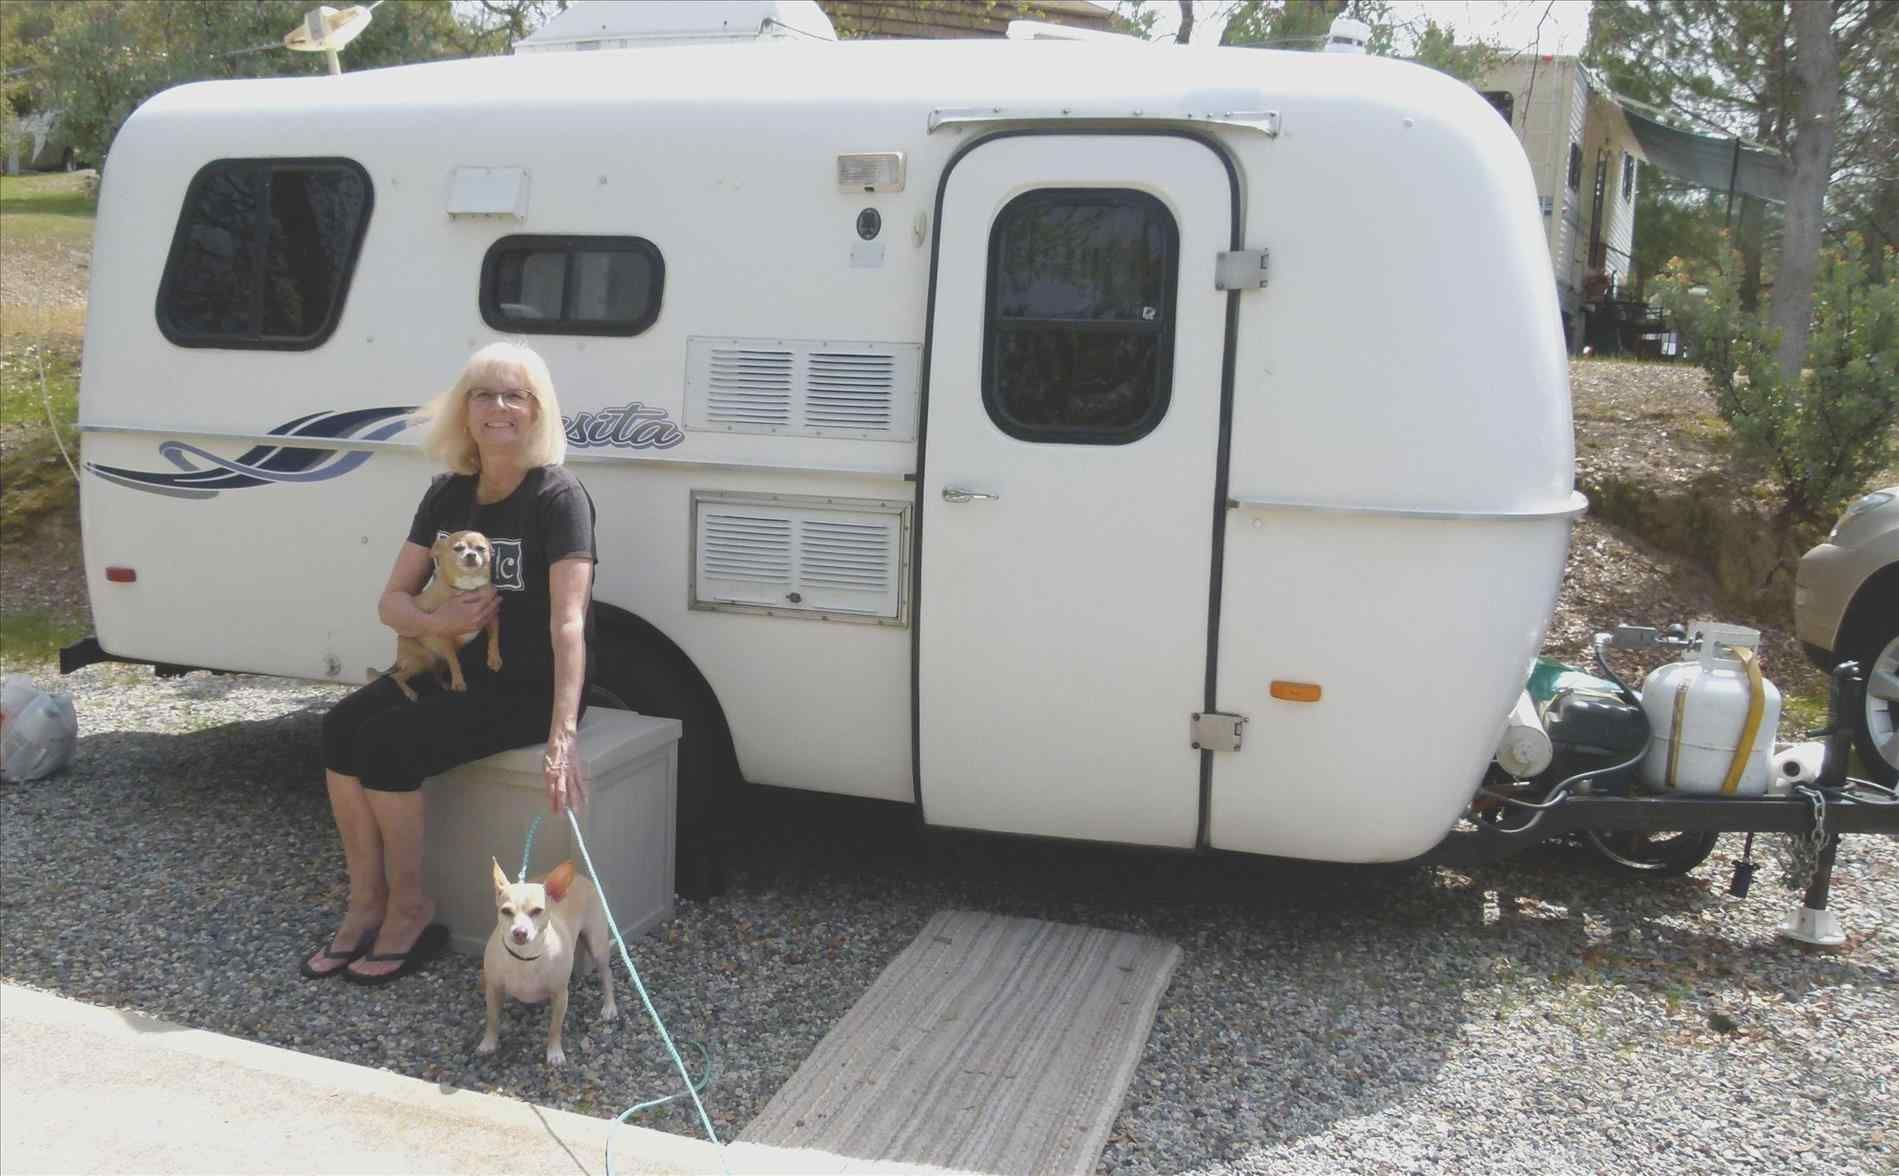 Top 20 Incredible Small Rv Trailer With Bathroom You Have To See Small Rv Trailers Rv Trailers Small Rv